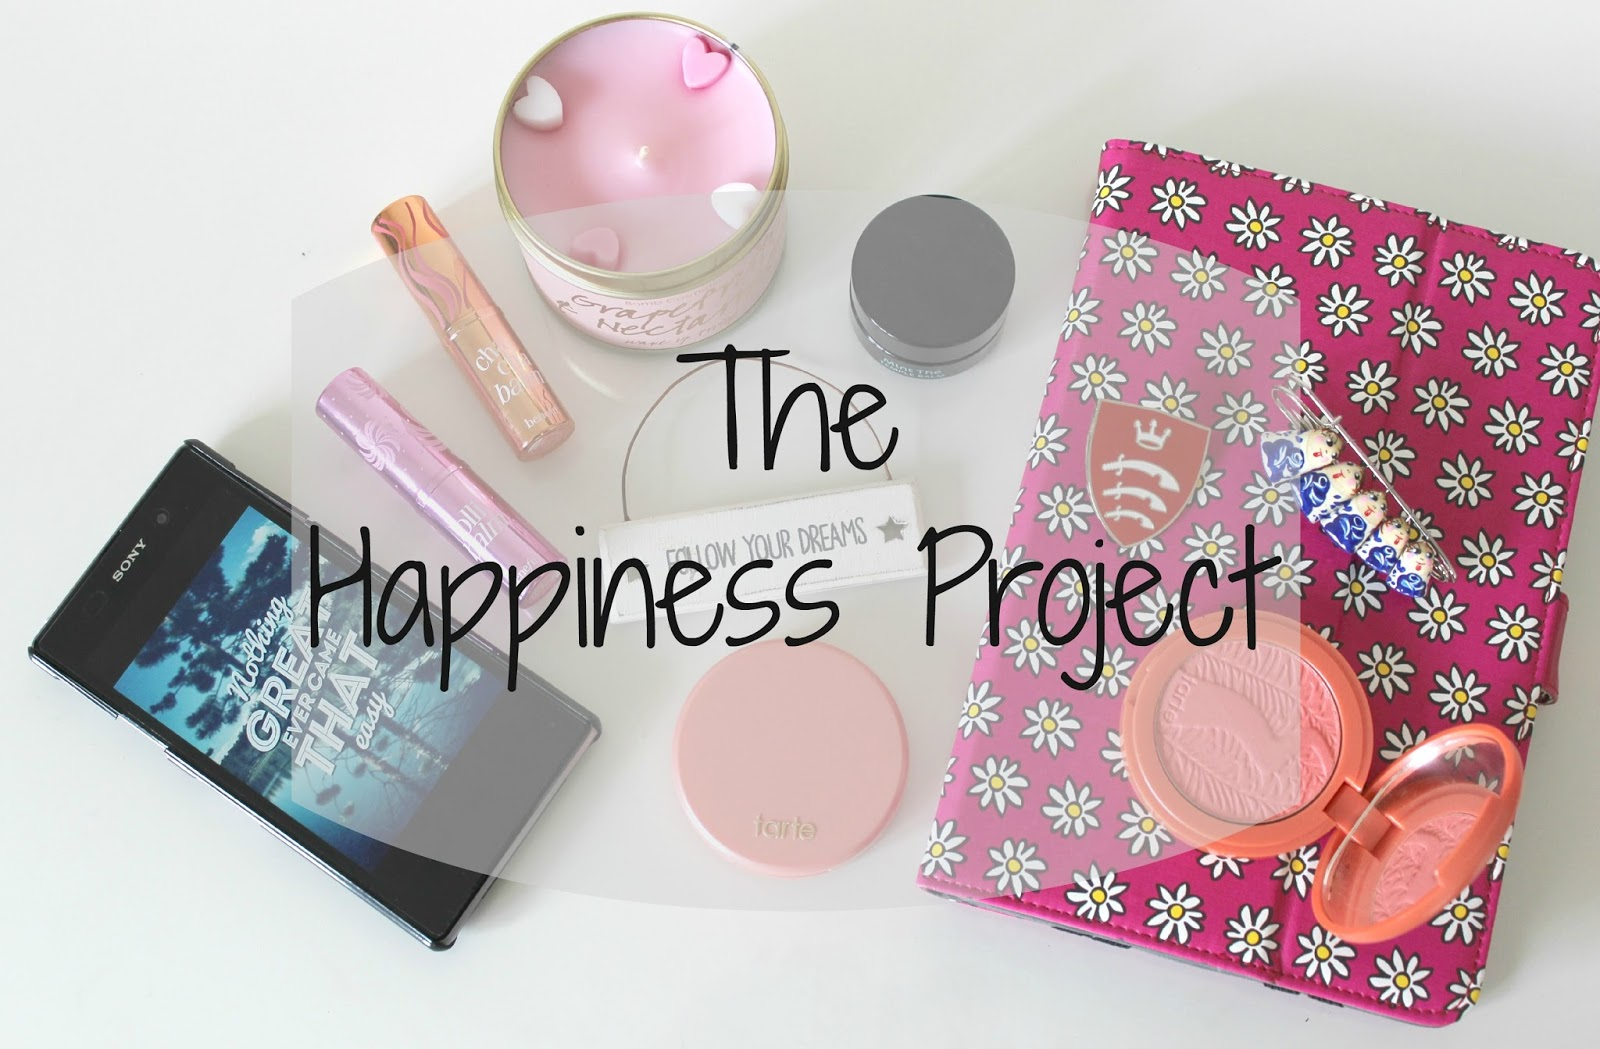 A picture of The Happiness Project